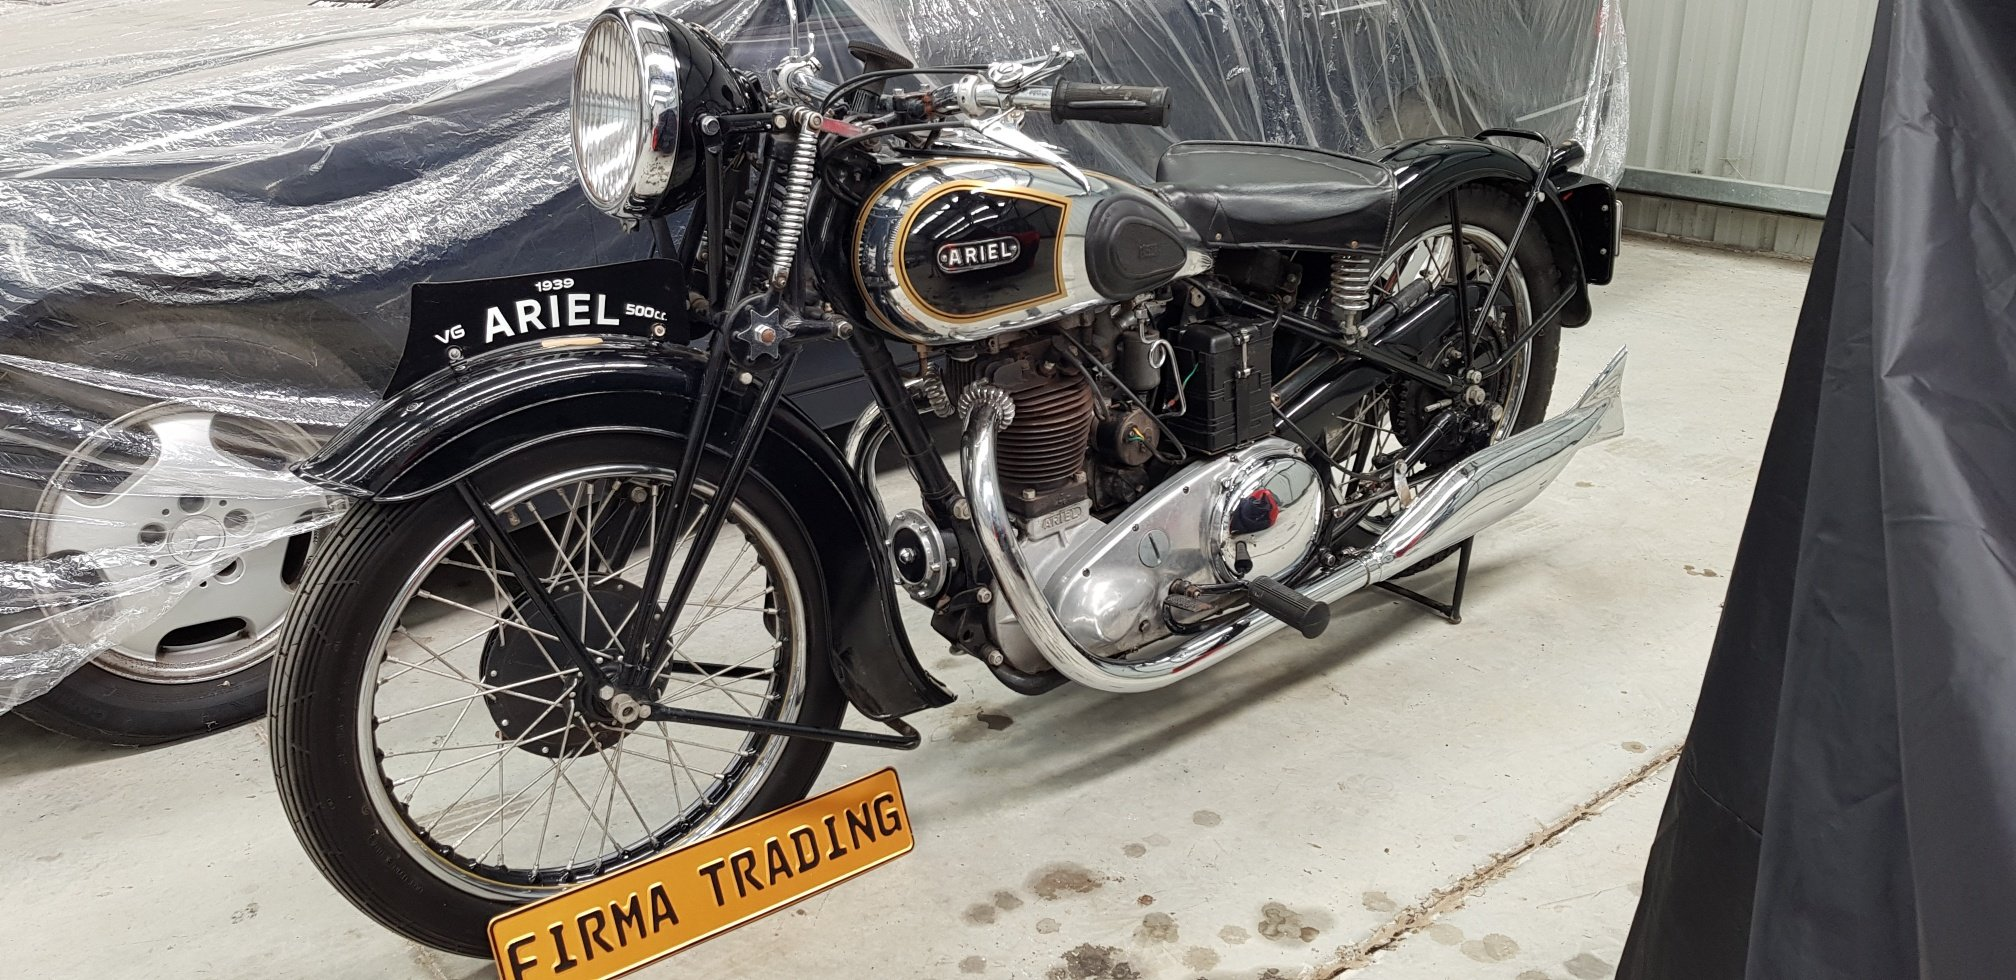 1939 Ariel VG 500cc by Firma Trading Australia For Sale (picture 1 of 6)